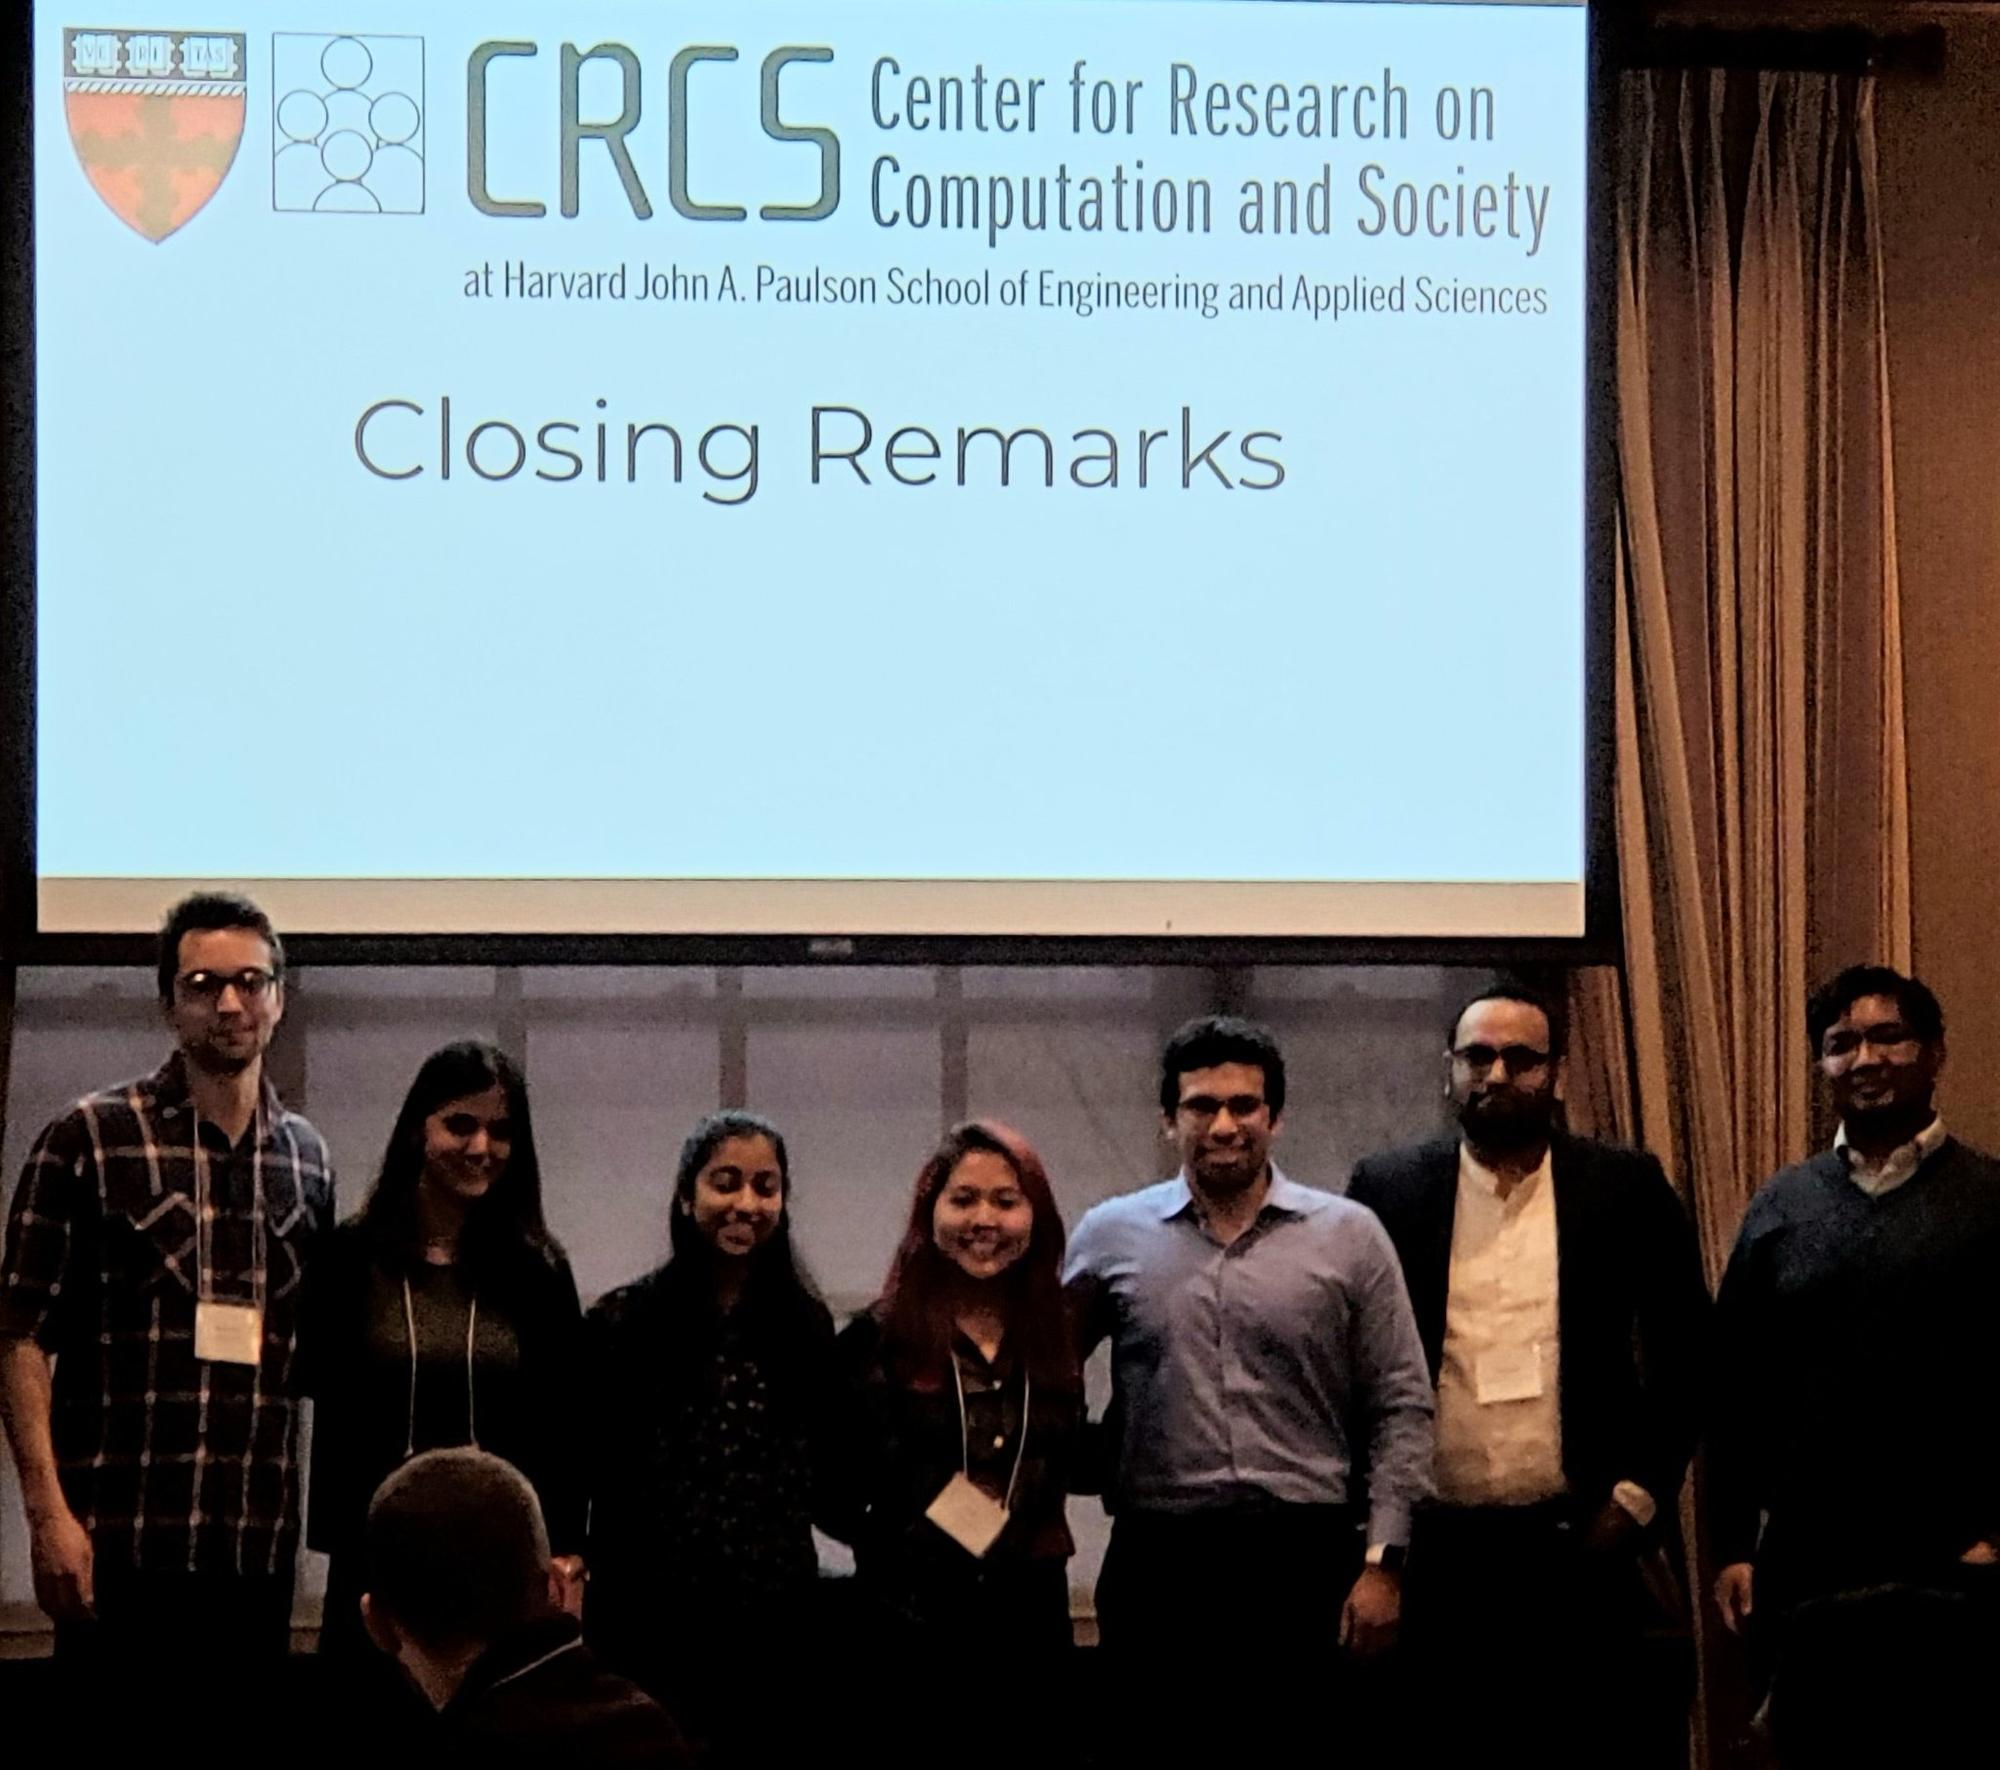 Harvard, MIT, and USC organizers addressed the workshop at its close